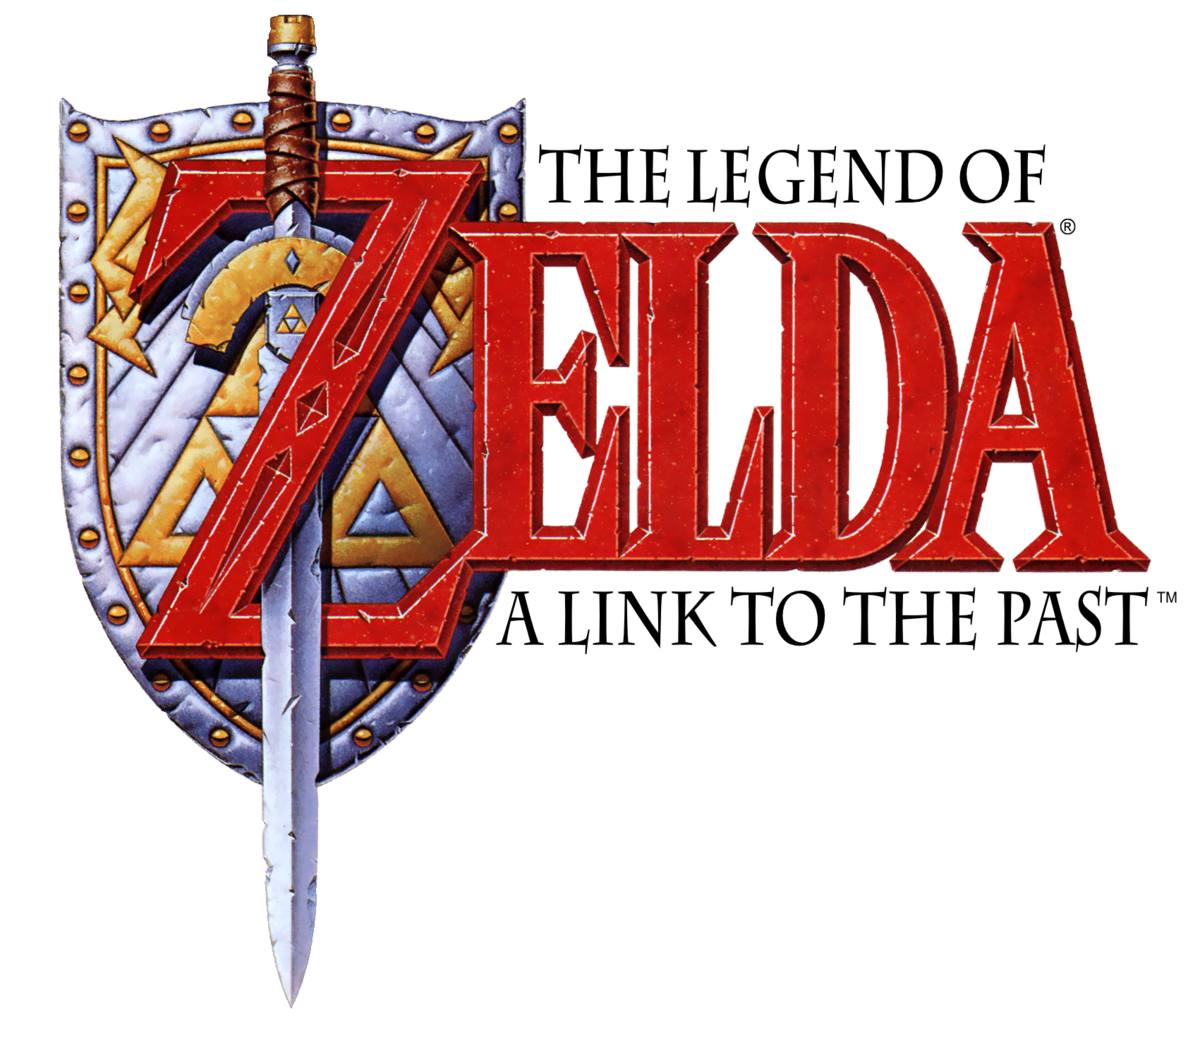 legend of zelda logo png